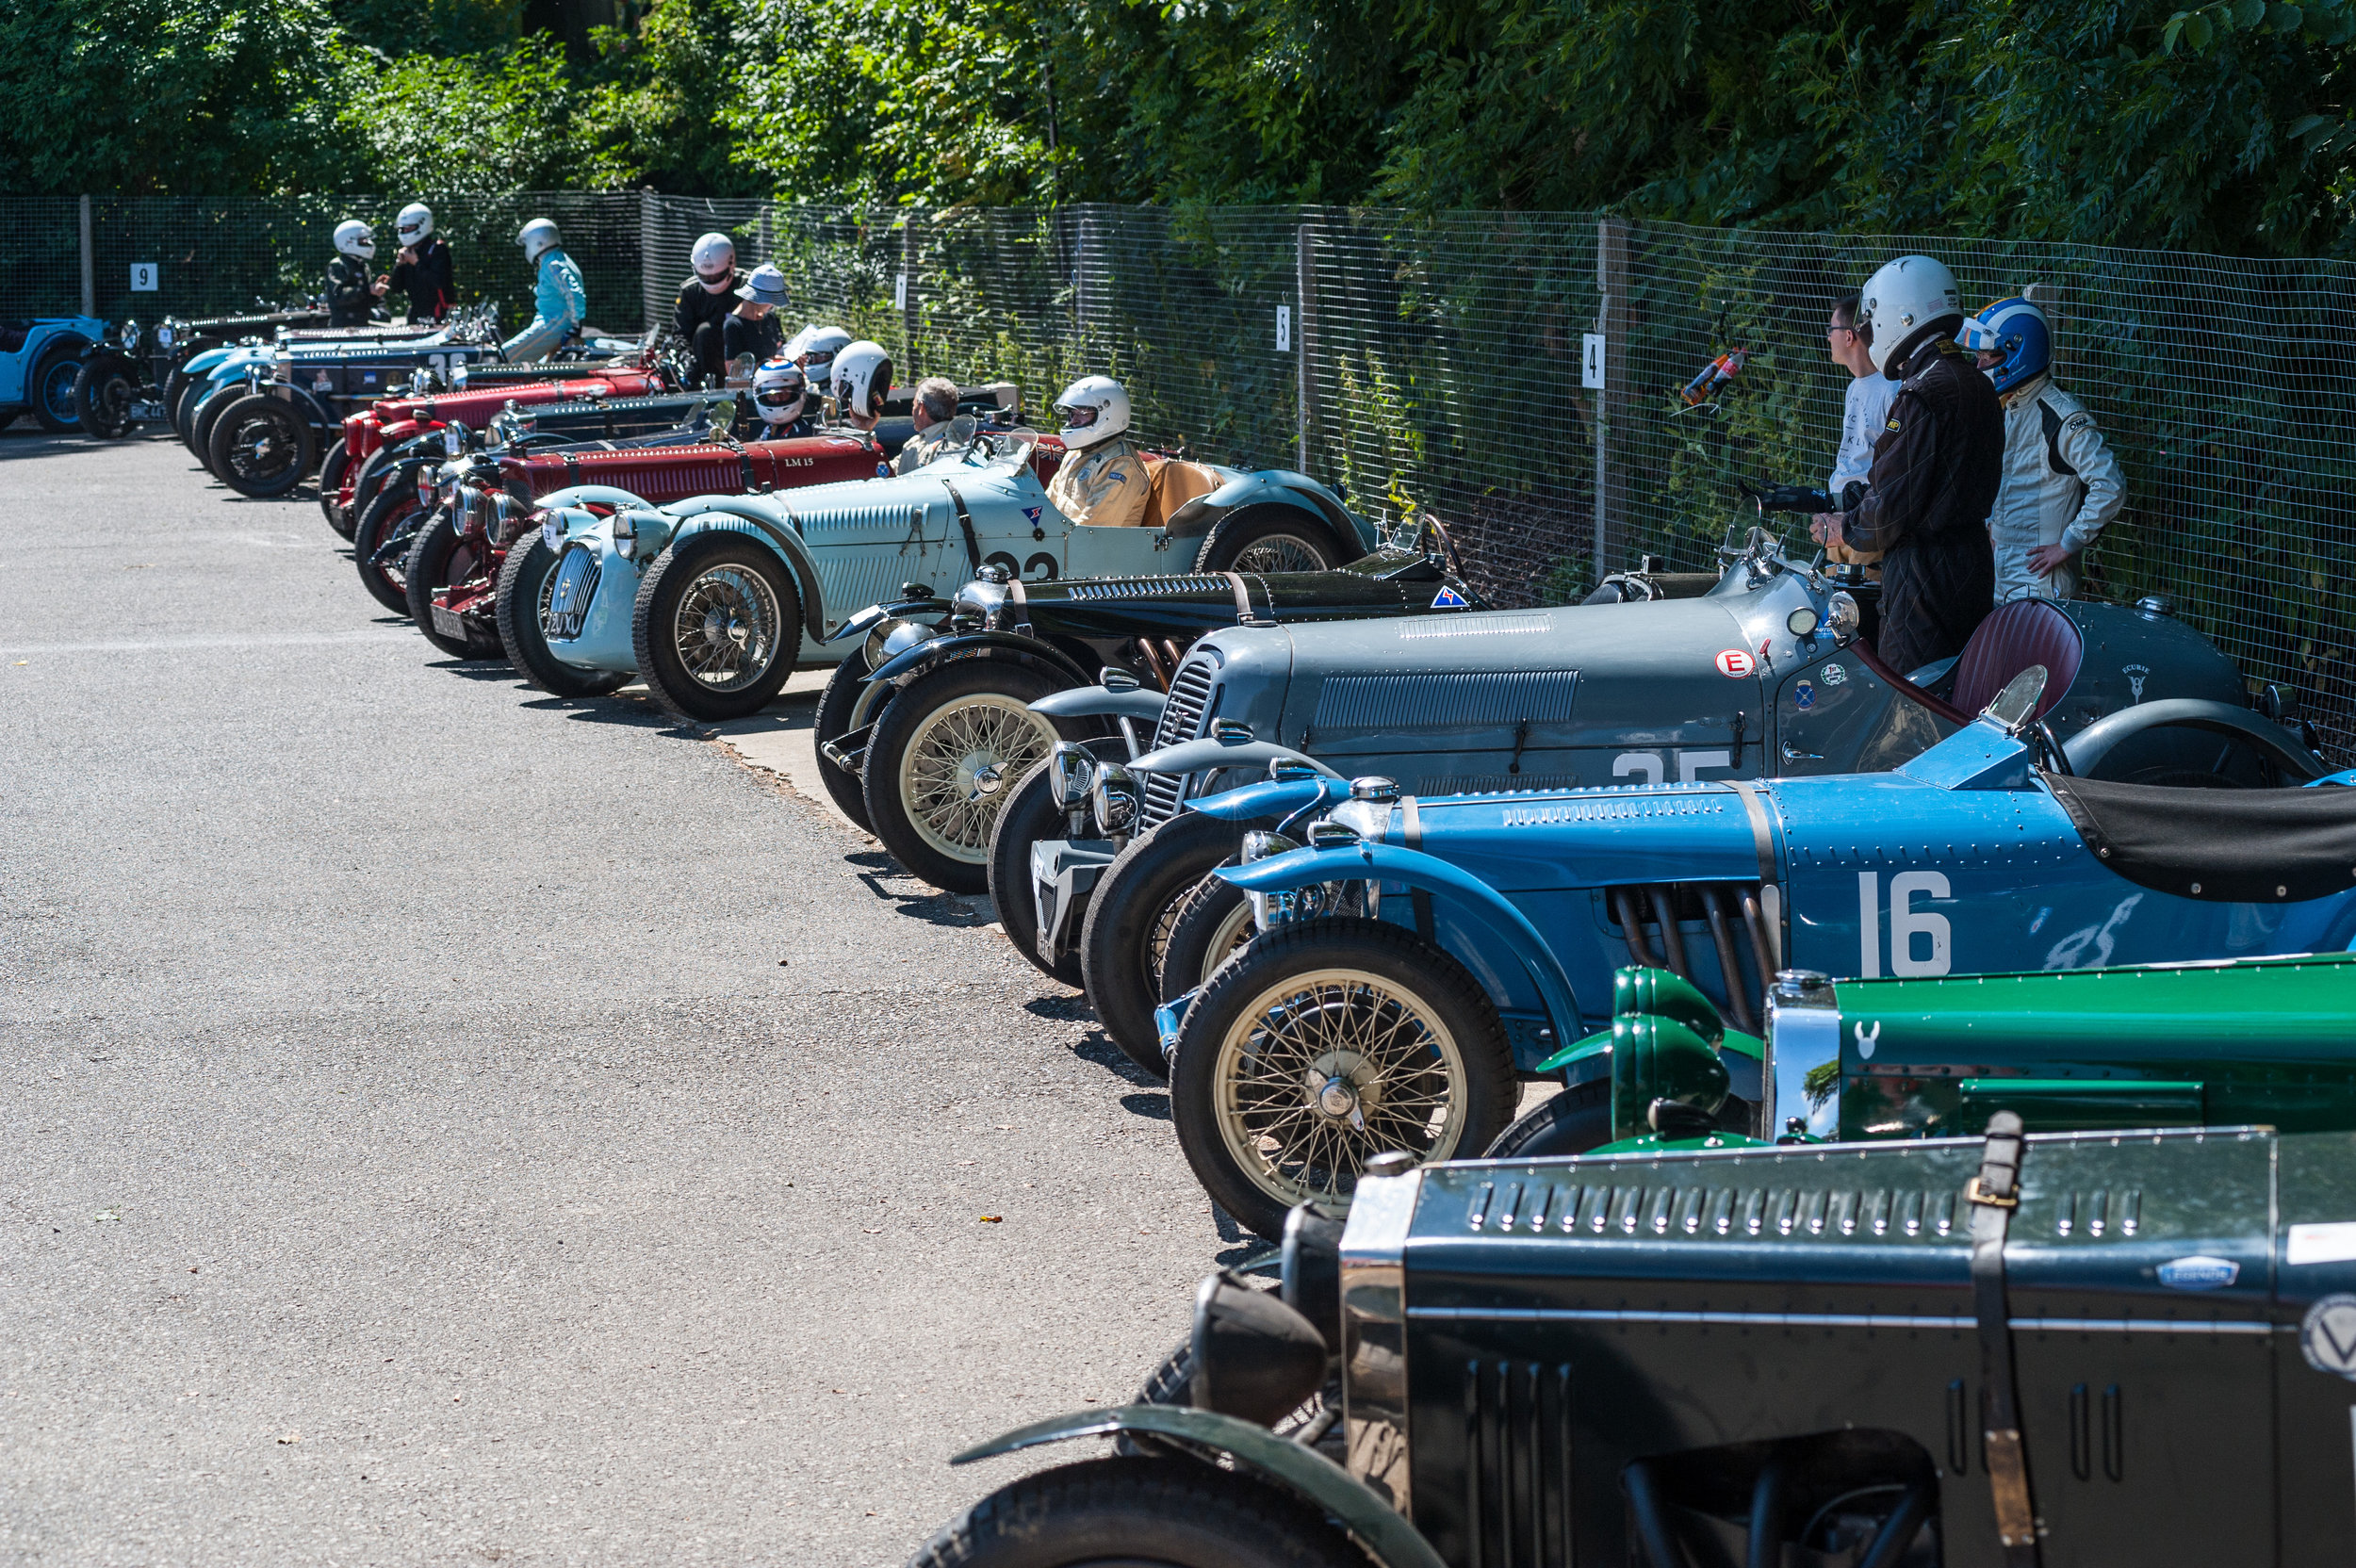 The fine summer continued as our drivers sought shade in assembly:  Peter McFadyen